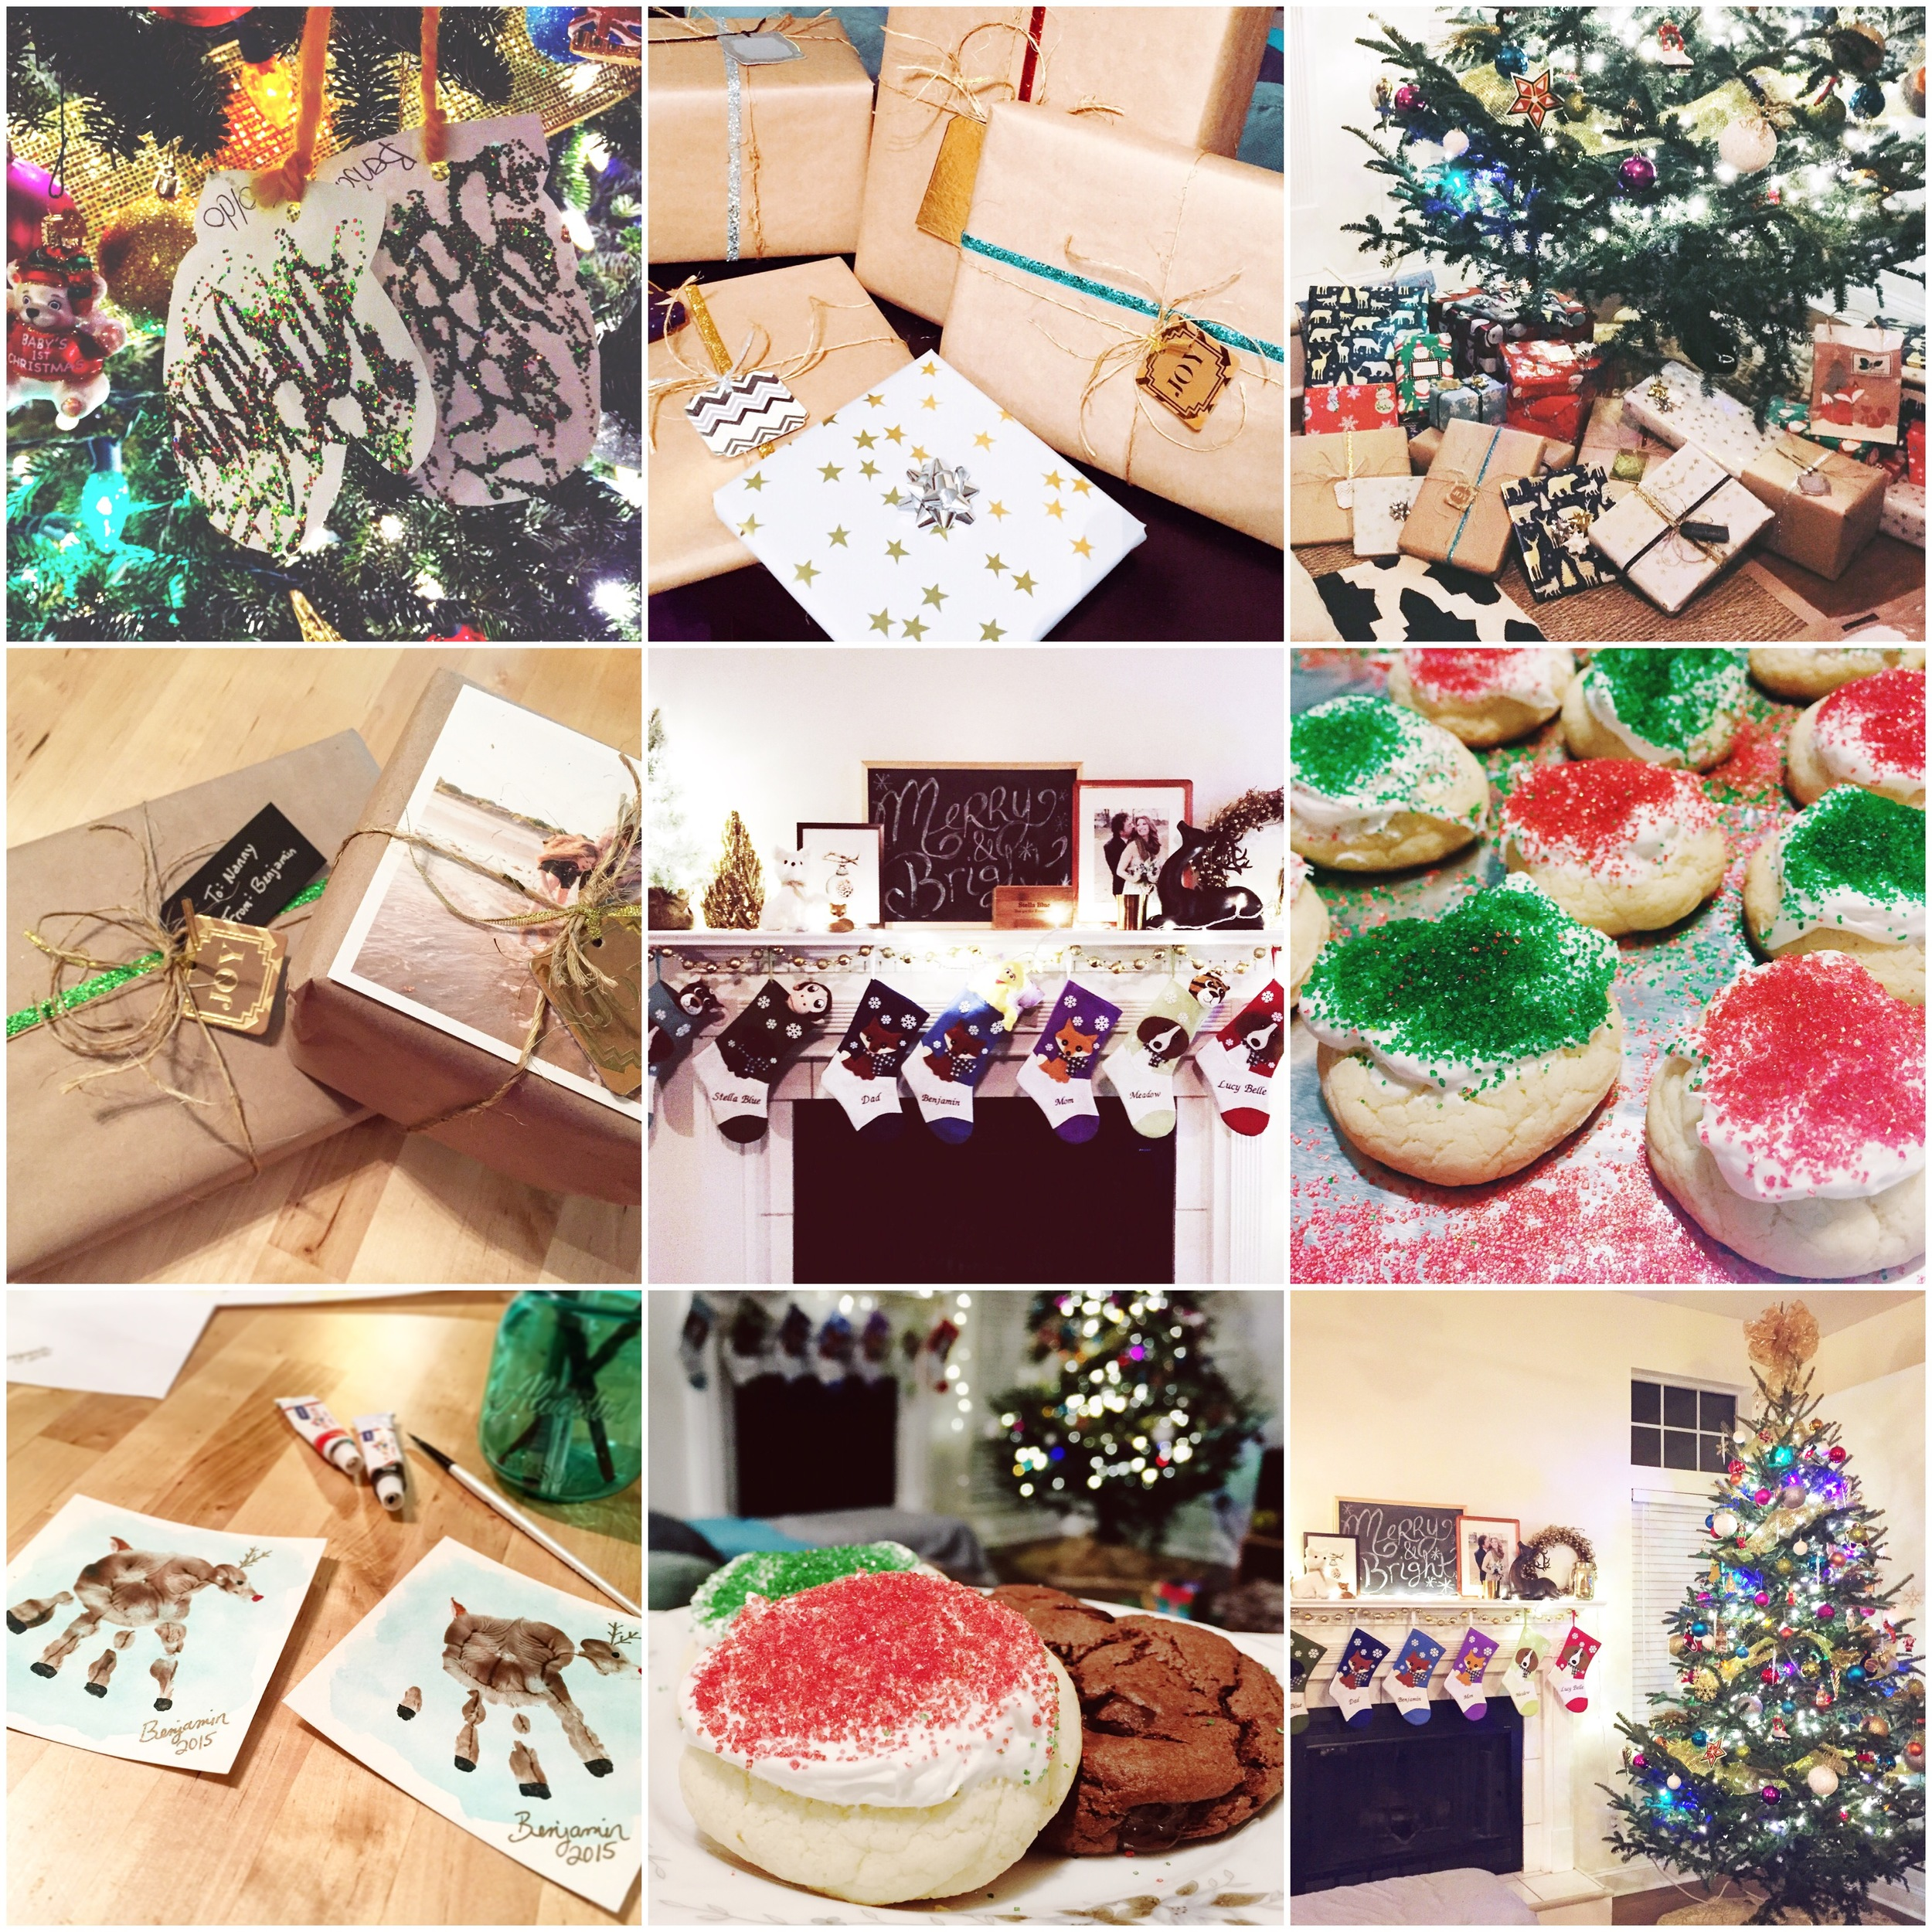 Our Christmas decorations, crafts, and cookies!